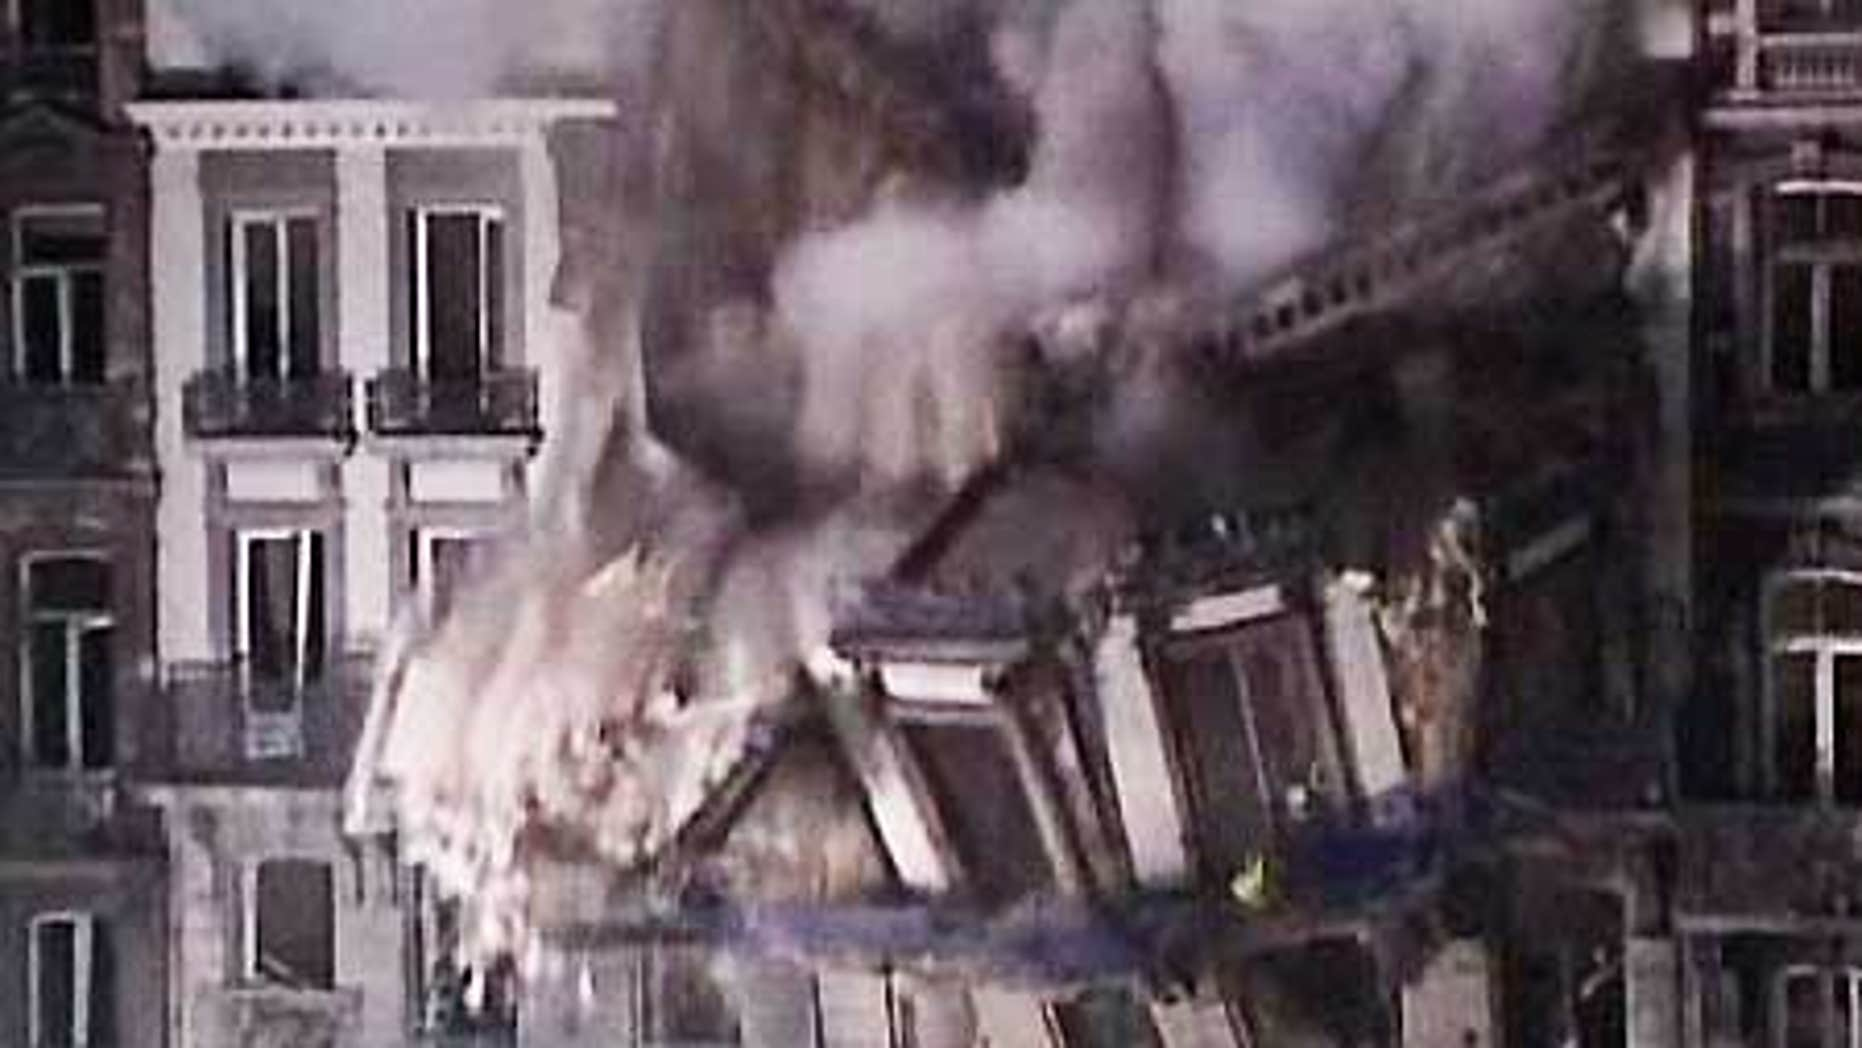 Jan. 27: An apartment building collapses in the city of Liege, Belgium.